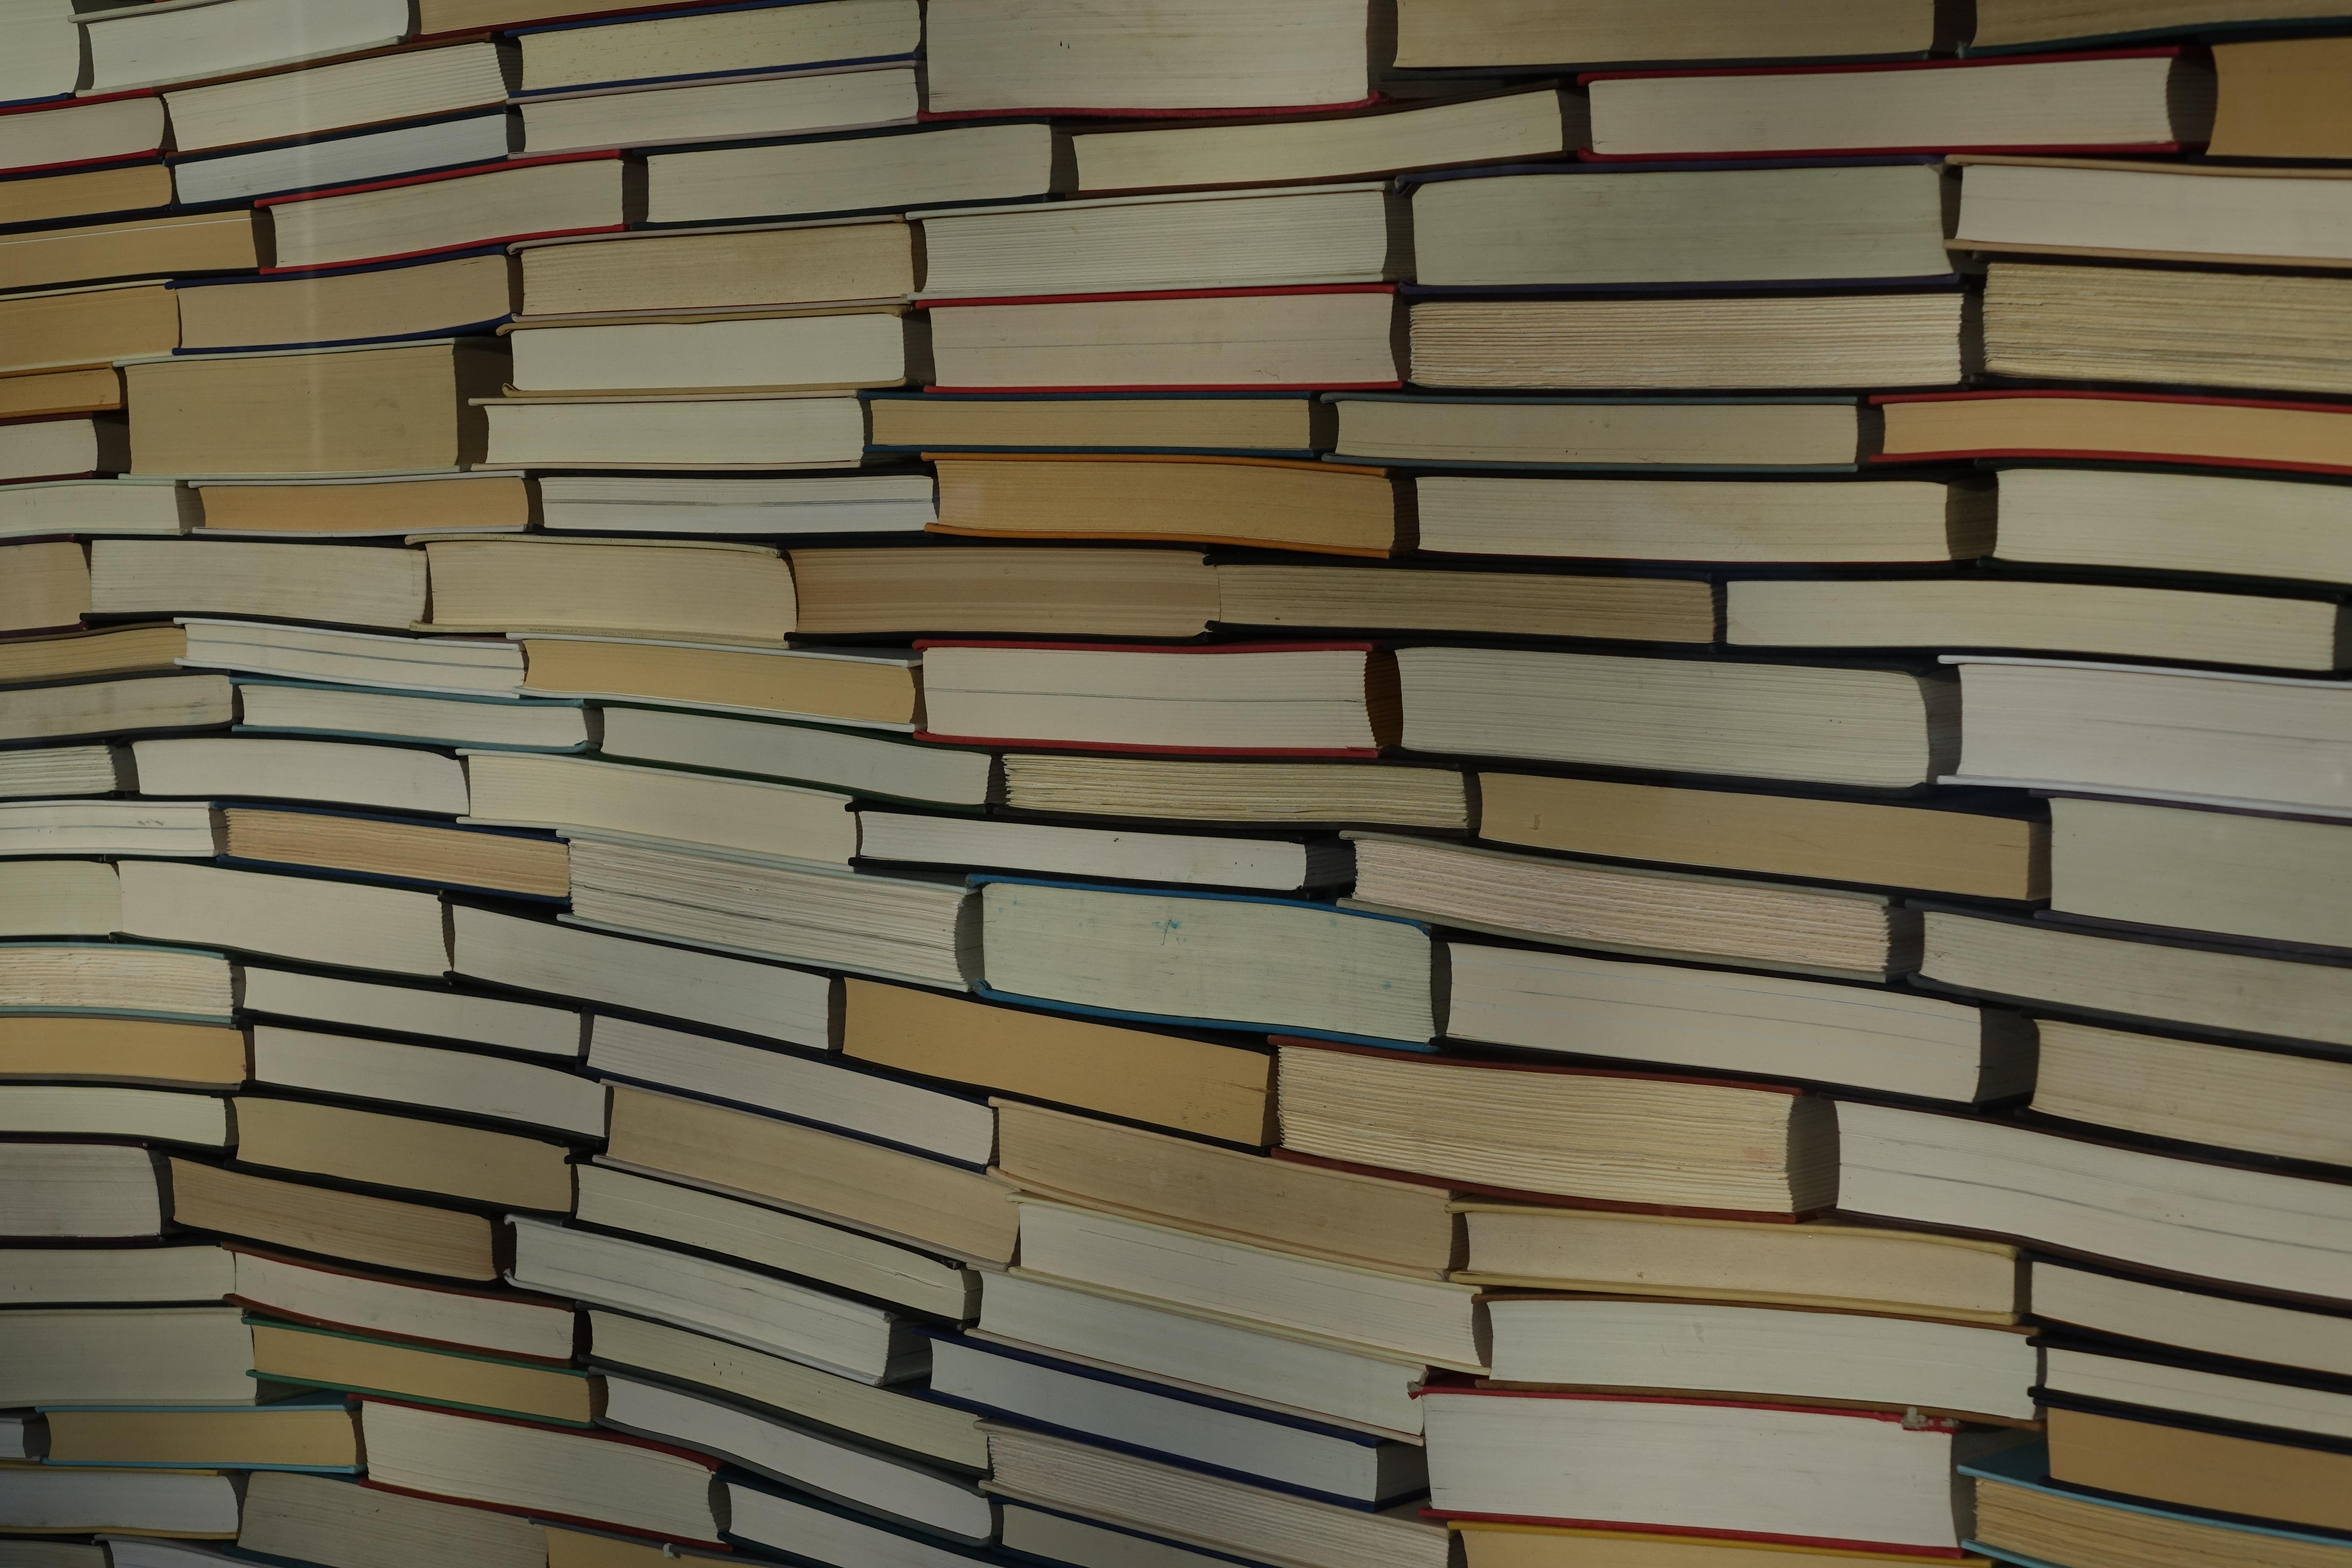 stack of large print books